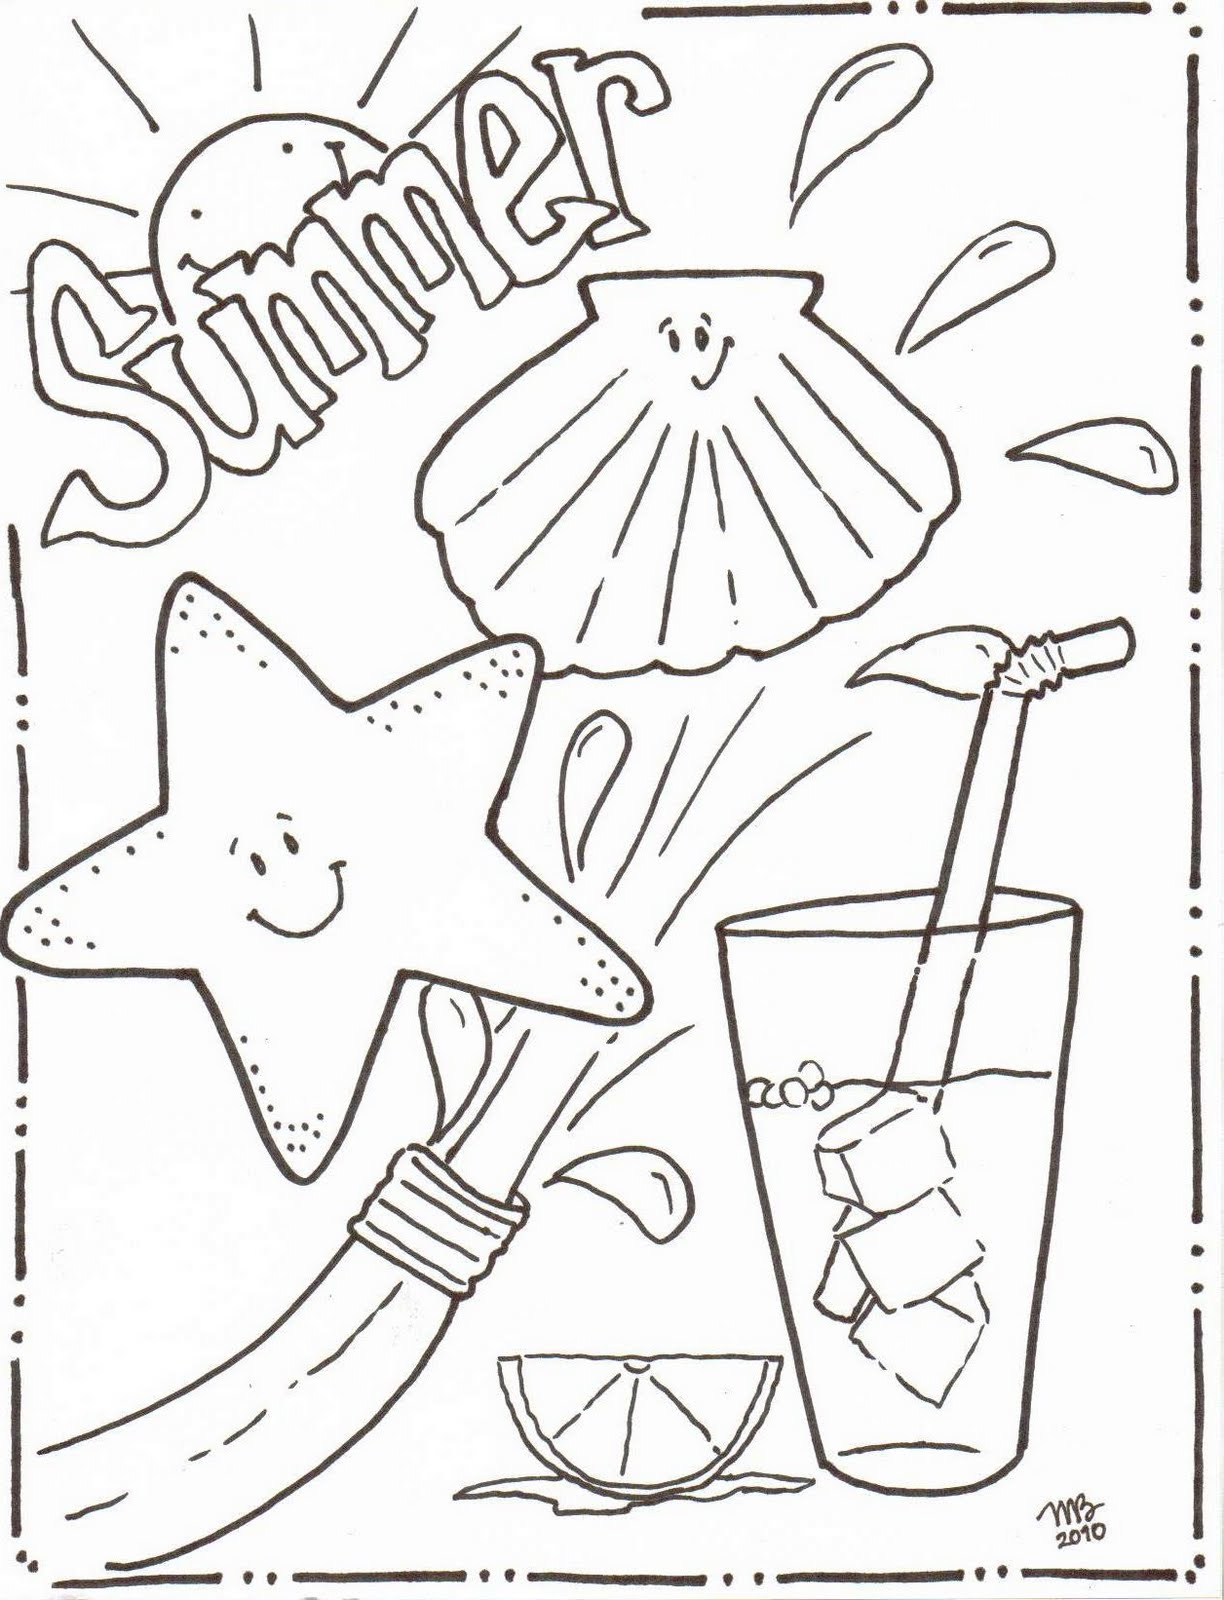 Michelle Kemper Brownlow Summer Coloring Pages Original Printable Coloring Pages Summer